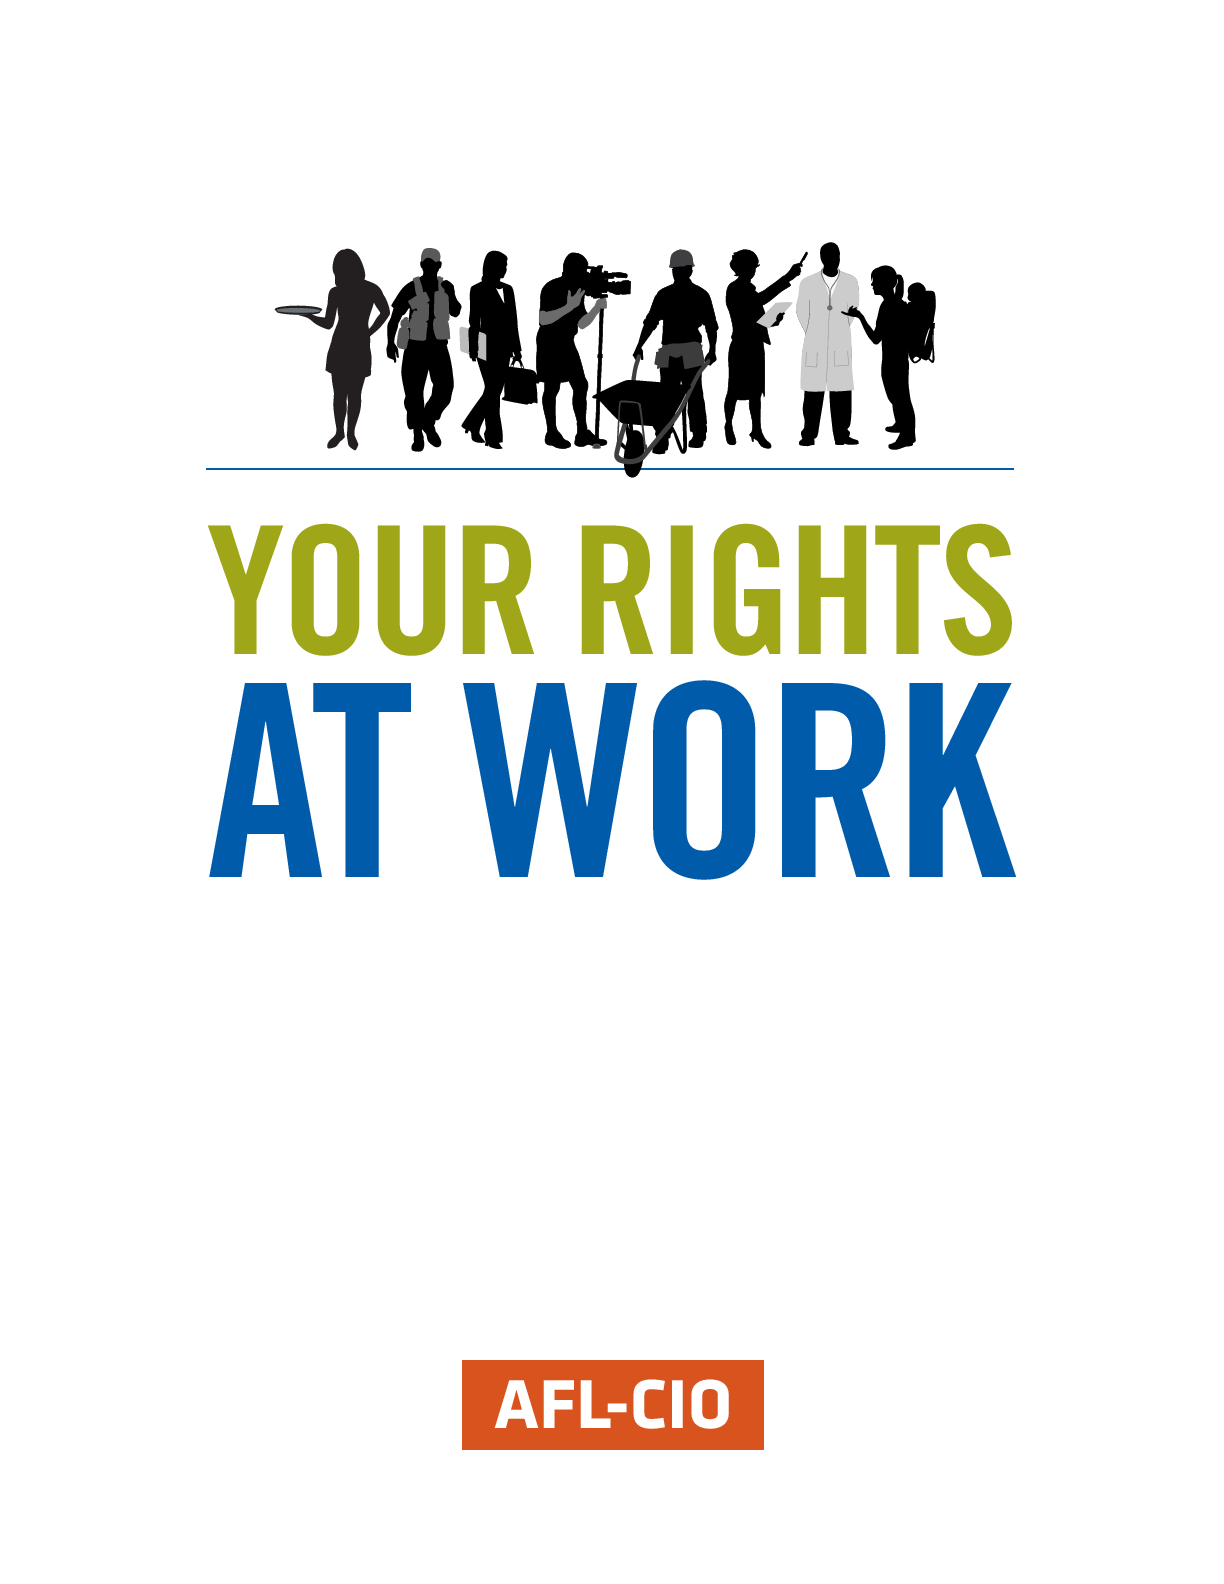 Your Rights at Work | AFL-CIO